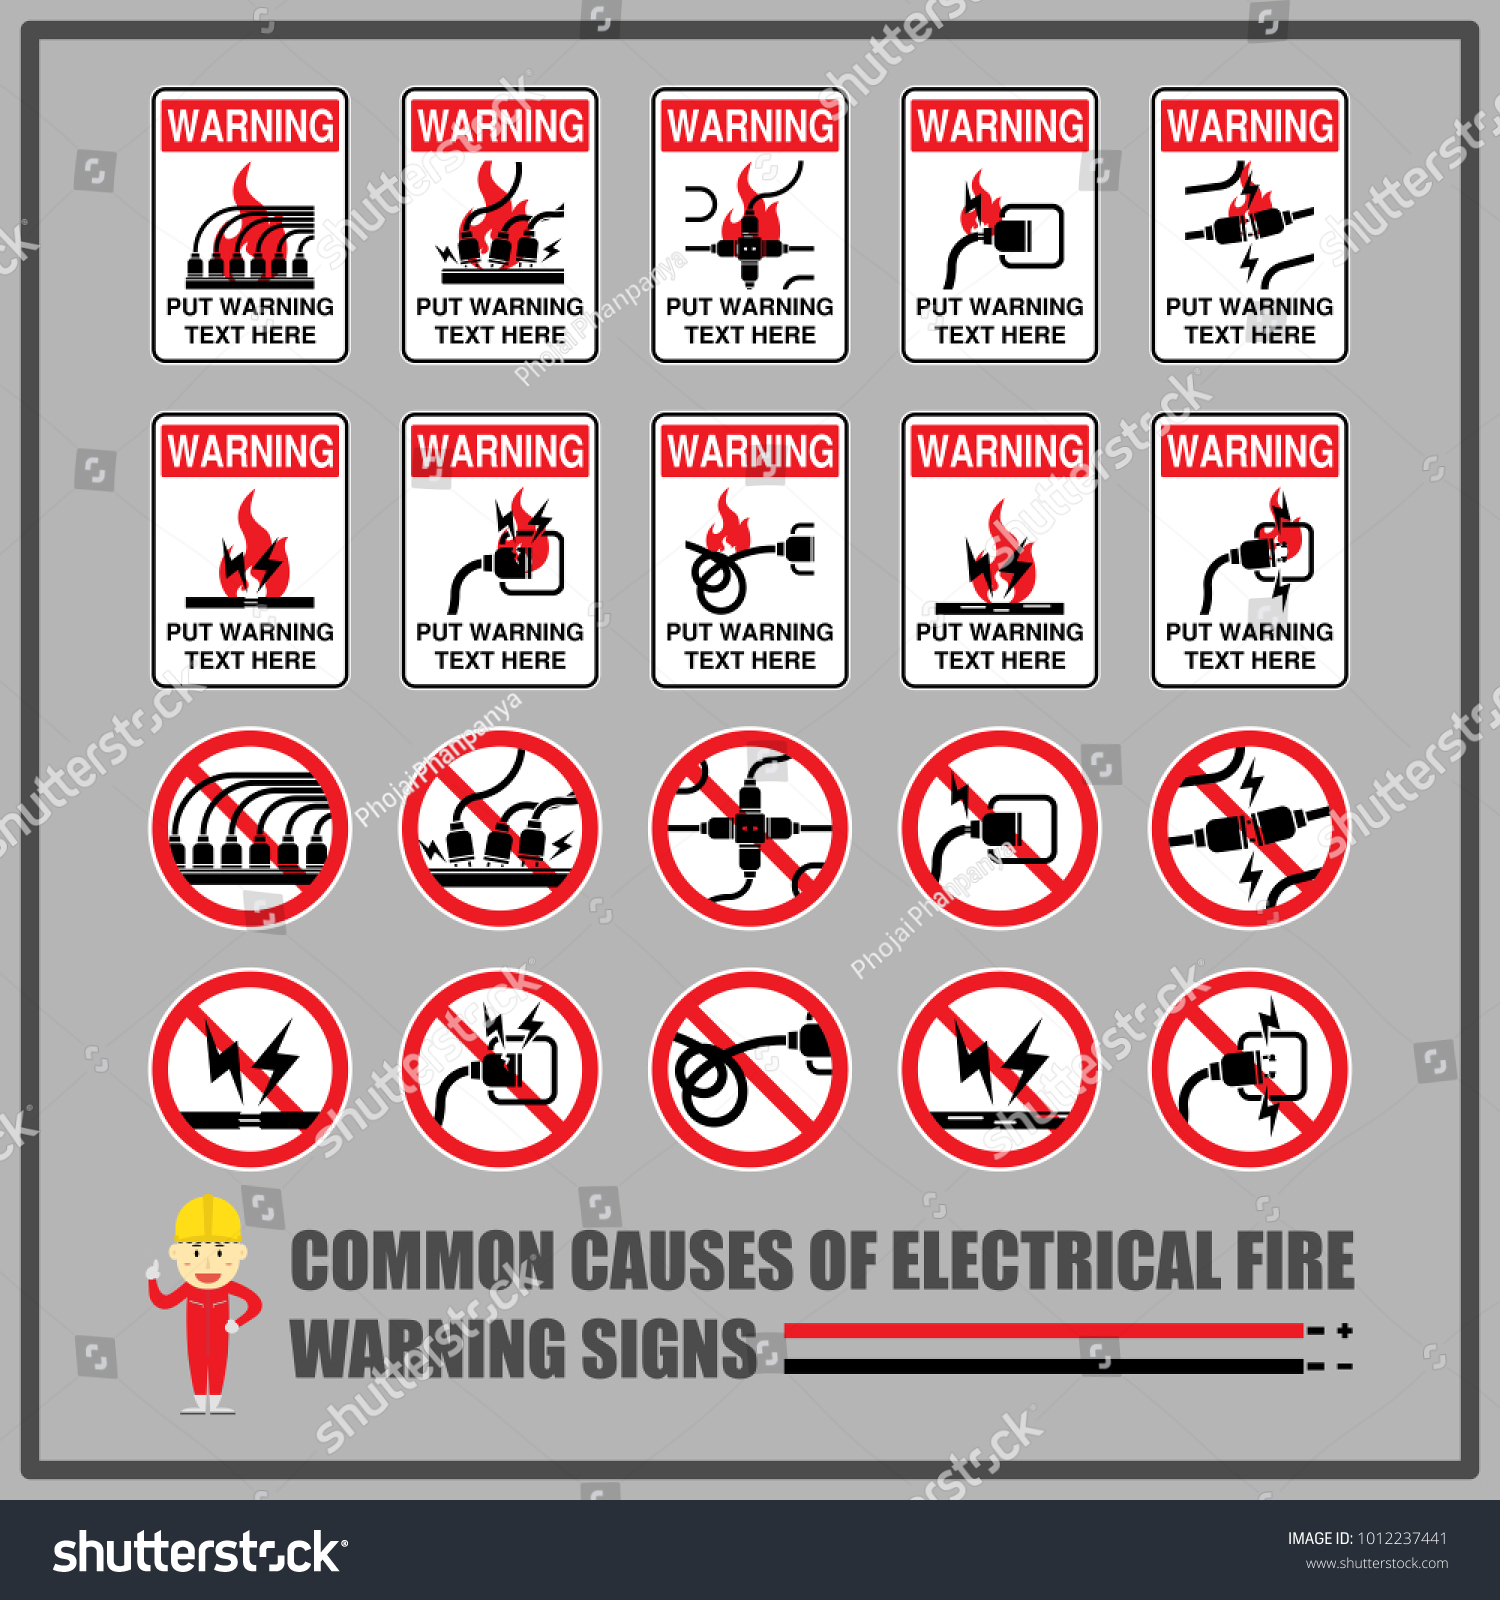 Set safety warning signs symbols causes stock vector 1012237441 set of safety warning signs and symbols for causes of common electrical fires signs for biocorpaavc